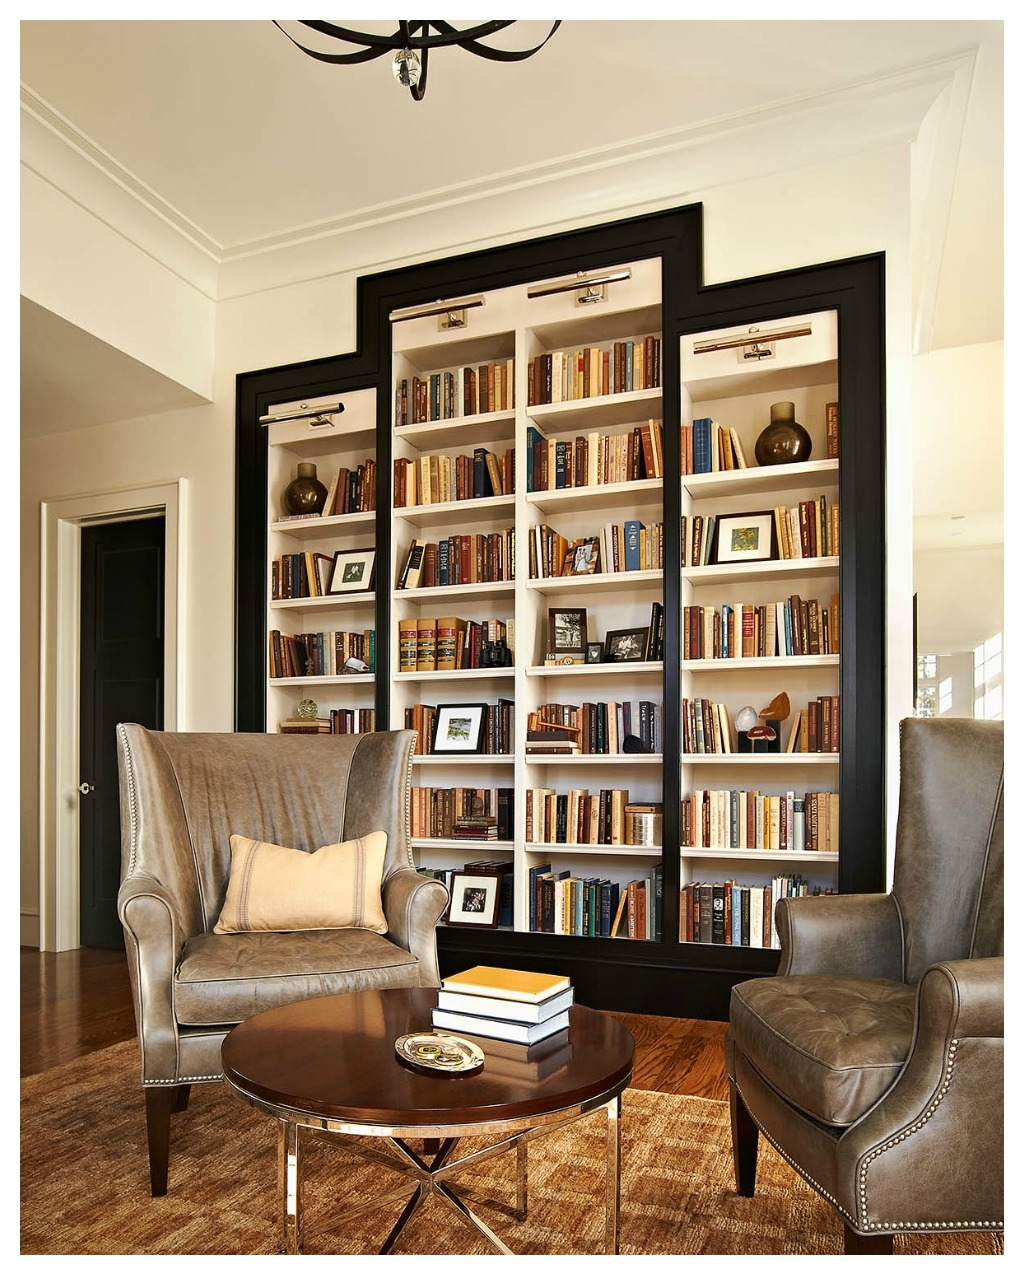 Bookshelves Study At Ncstate Chancellors House Design Lines Ltd Throughout Book Cabinet Design (Image 5 of 15)